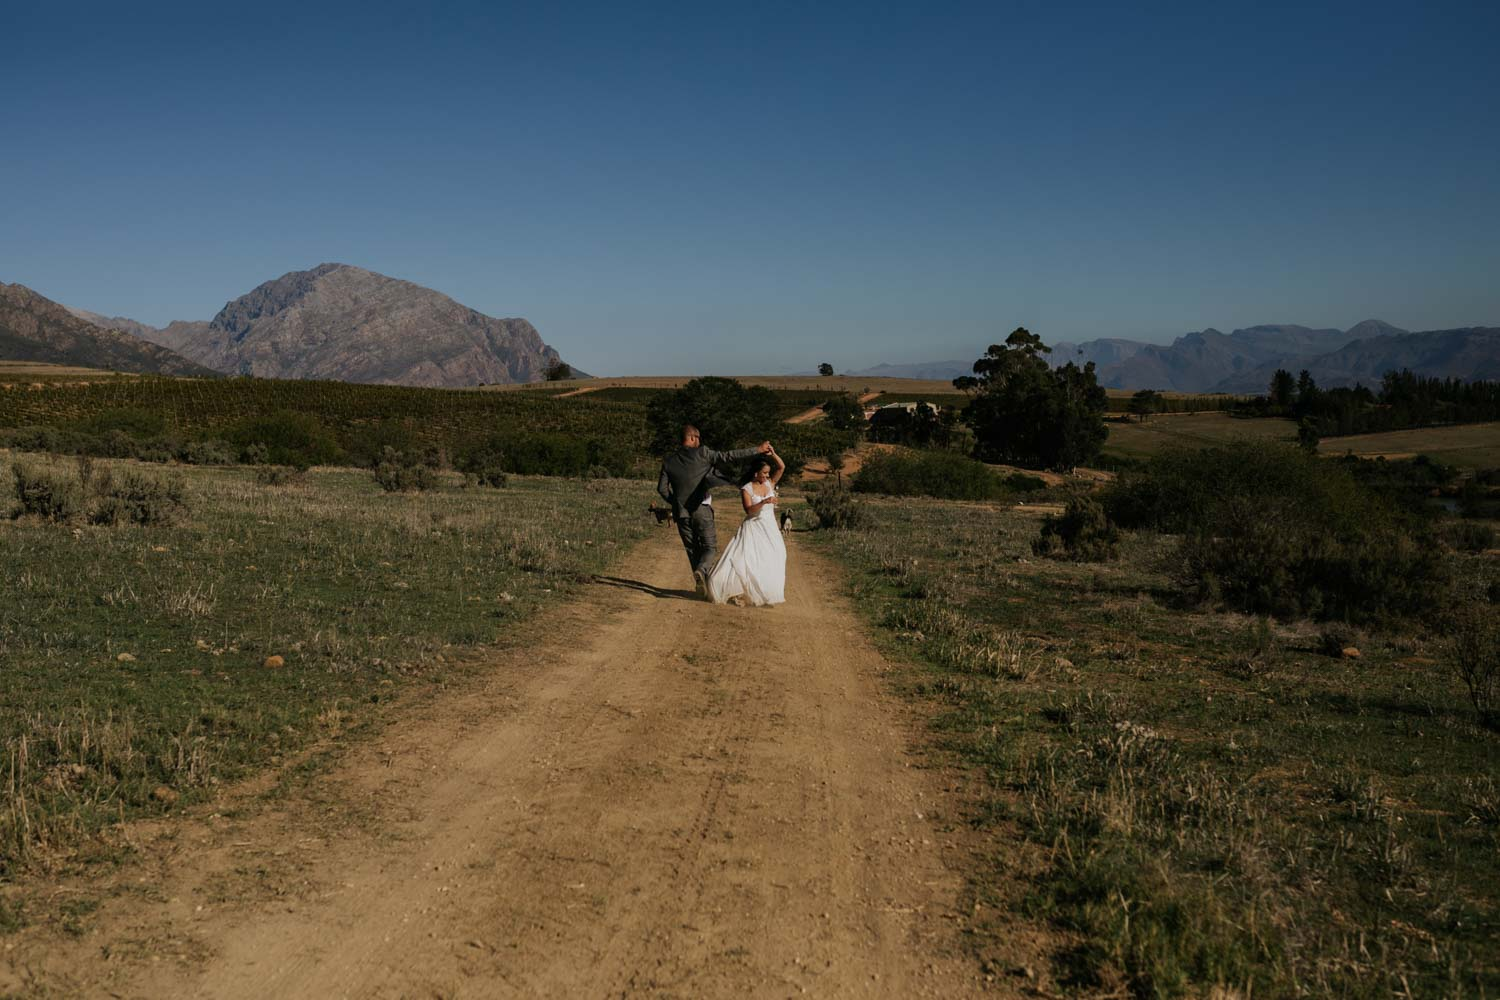 Bride and groom dancing on a dusty farm road near Cape Town, South Africa.